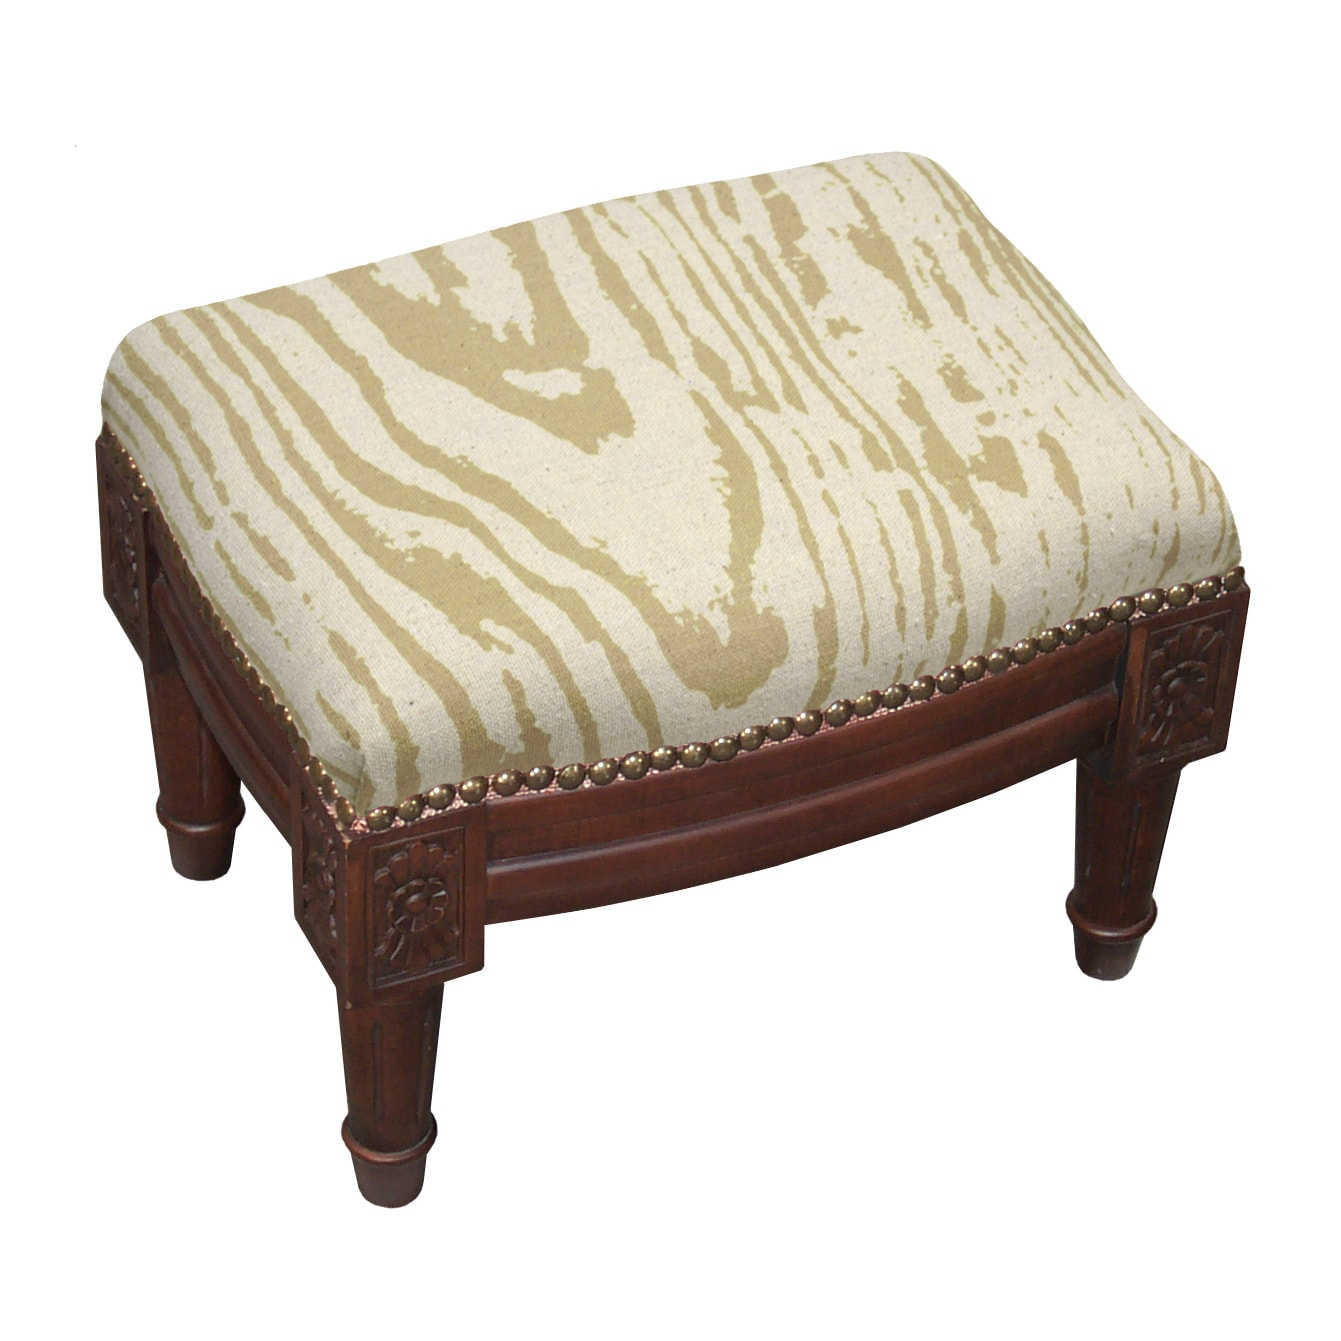 123 Creations Faux Bois Tan Green Wooden Fabric Footstool with Nail Heads by Overstock